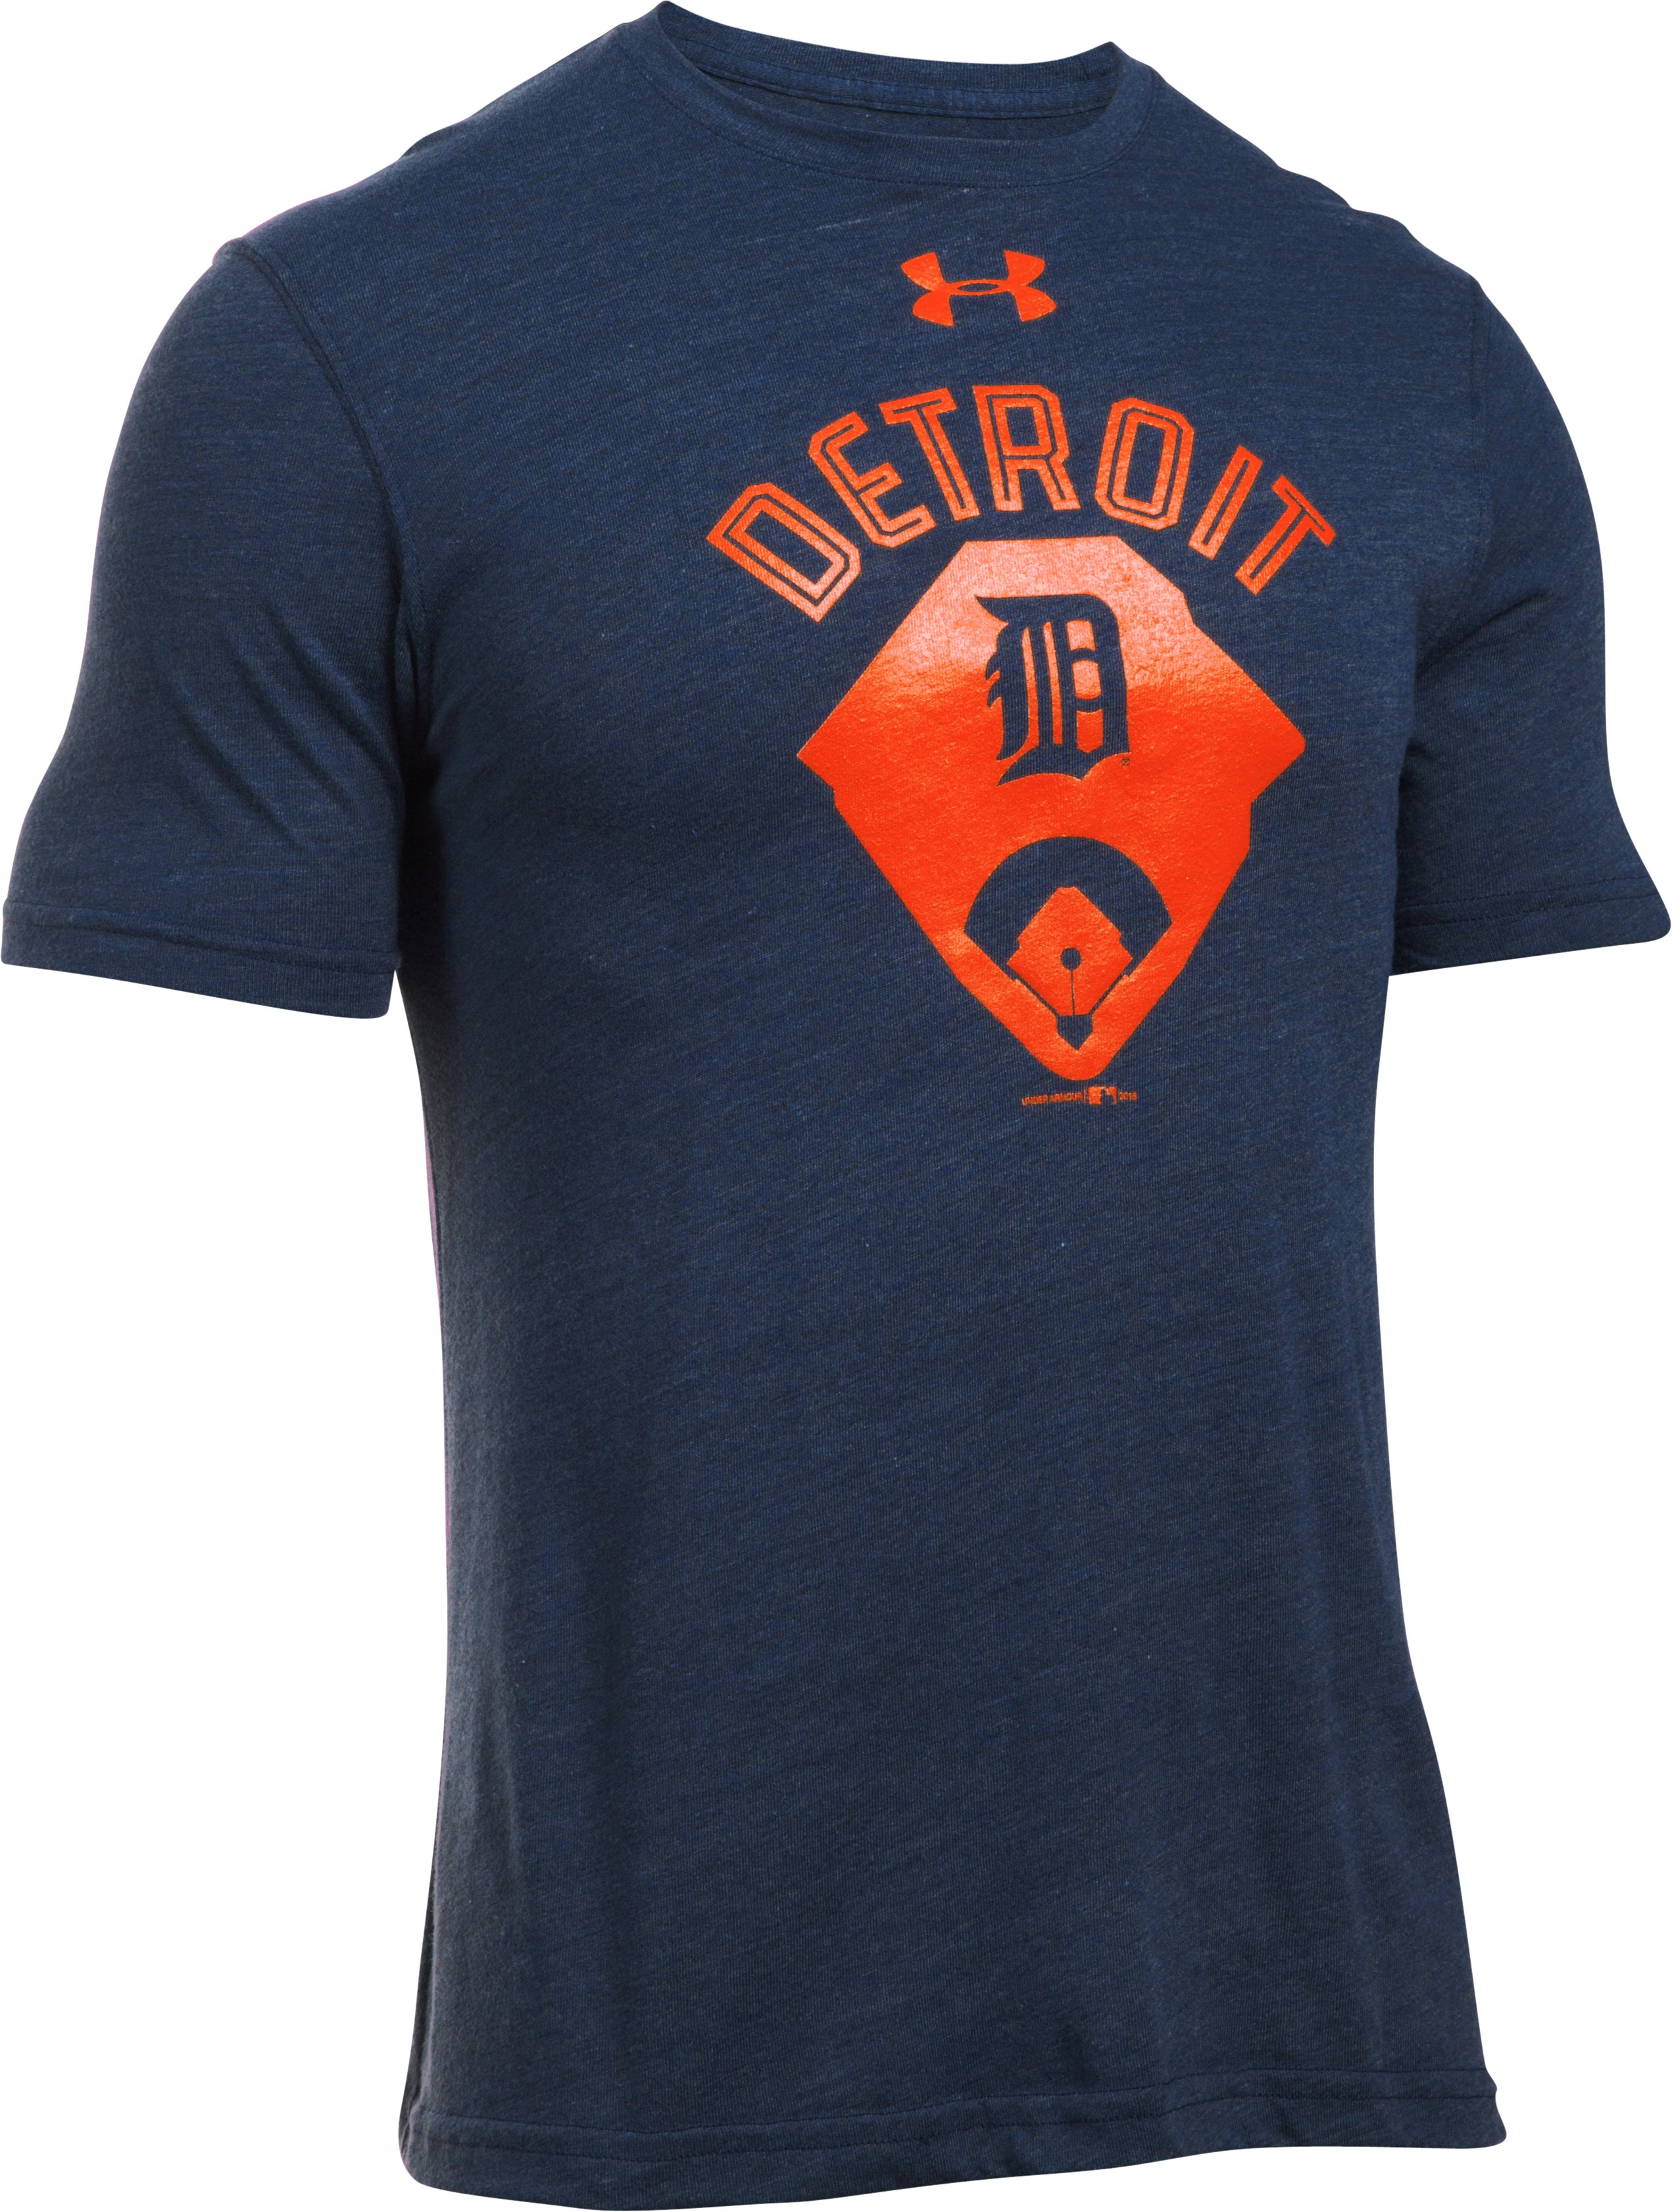 Men's Detroit Tigers Vintage Tri-blend, Midnight Navy